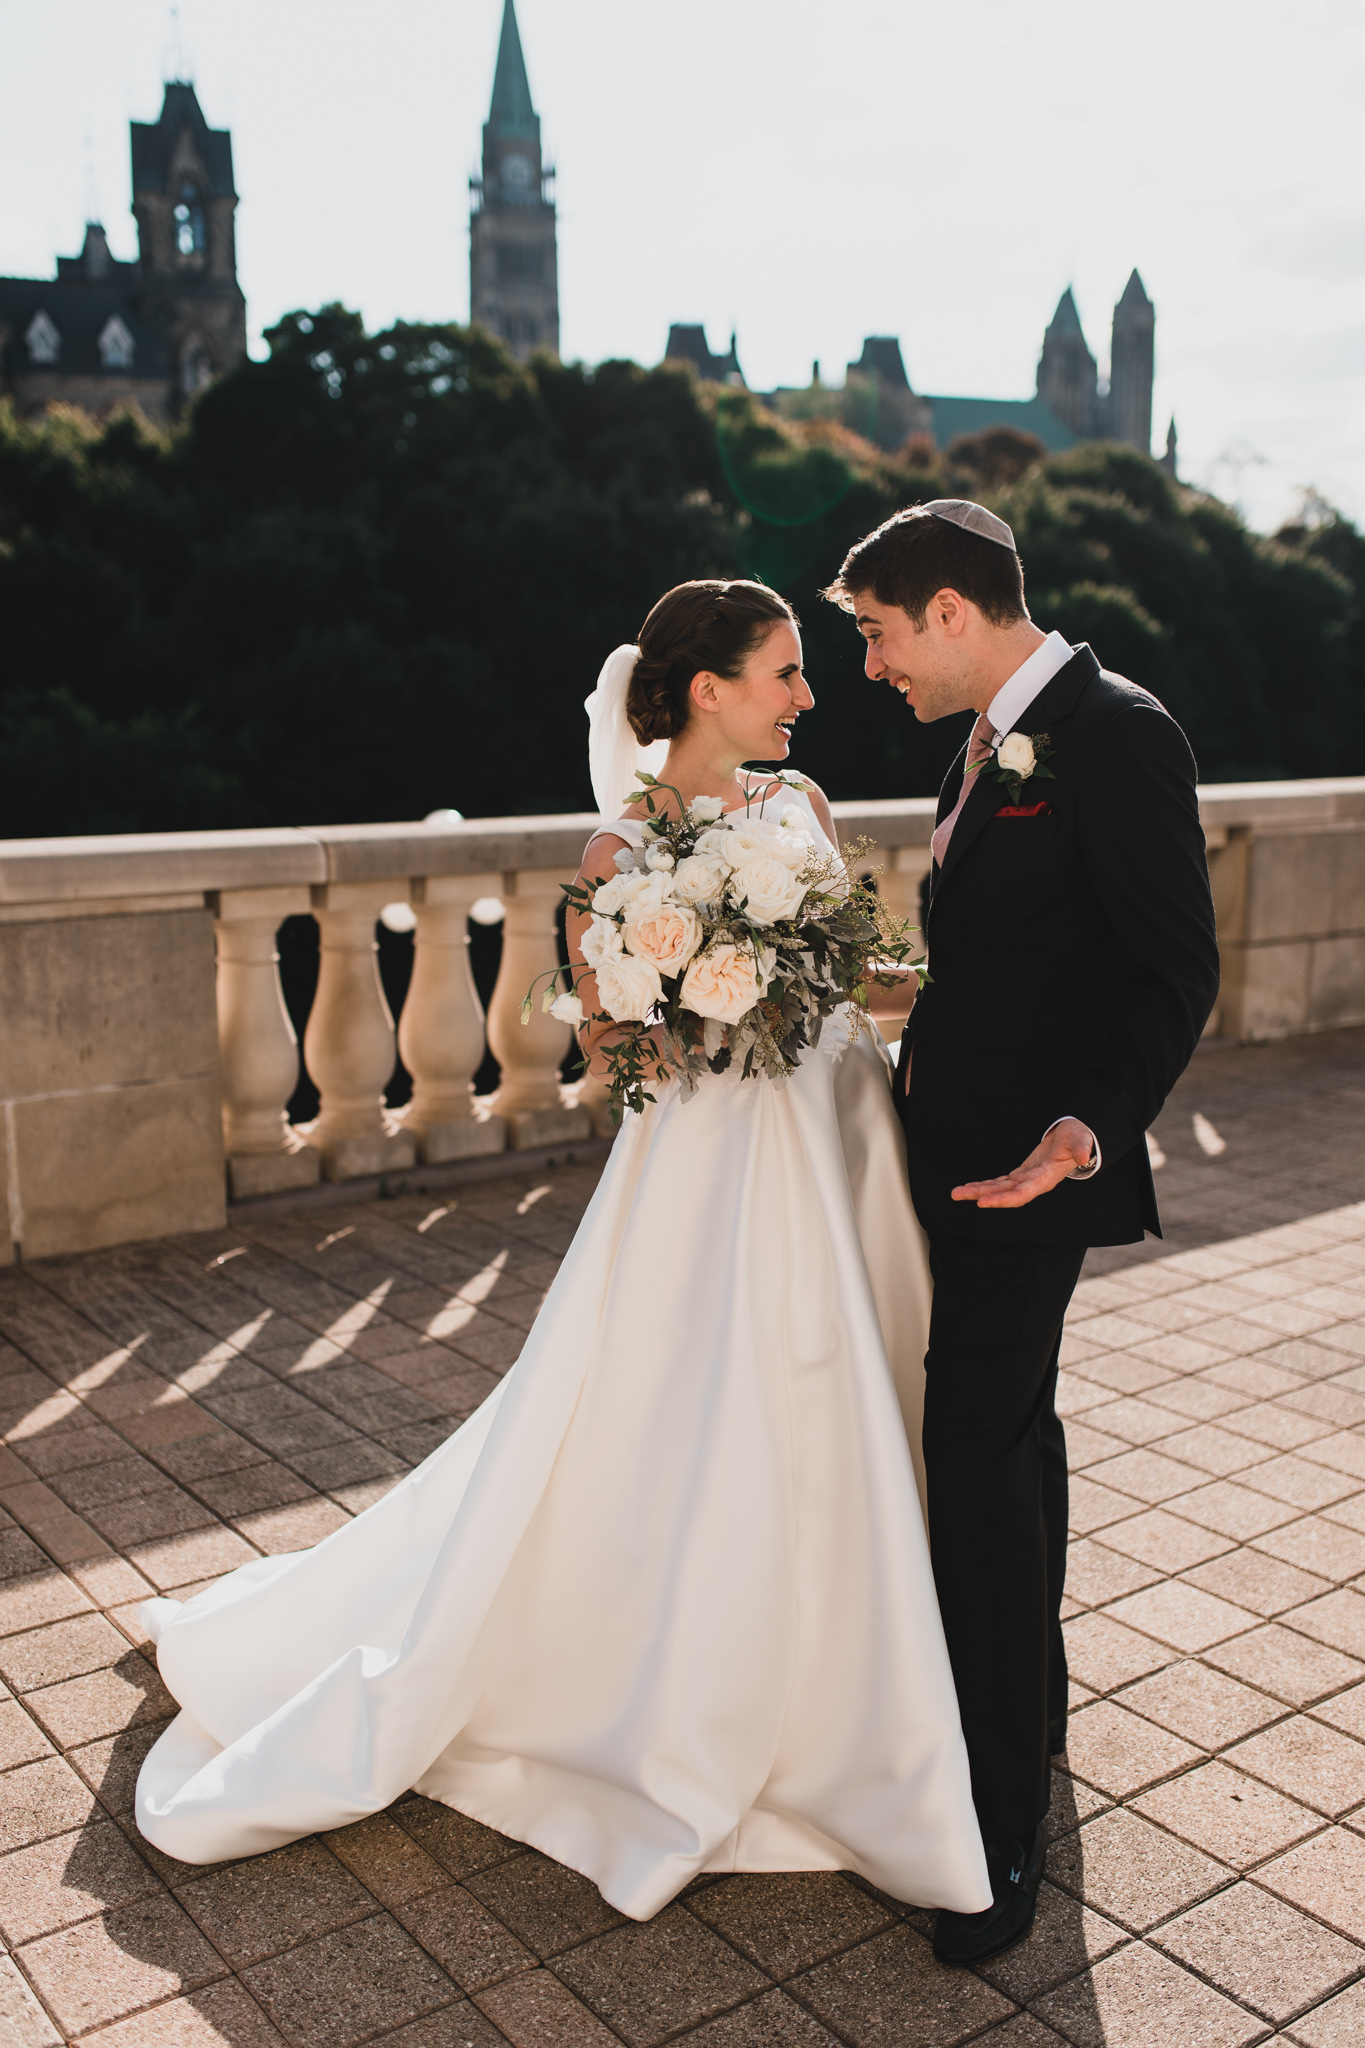 Ottawa's Fairmont Laurier Wedding